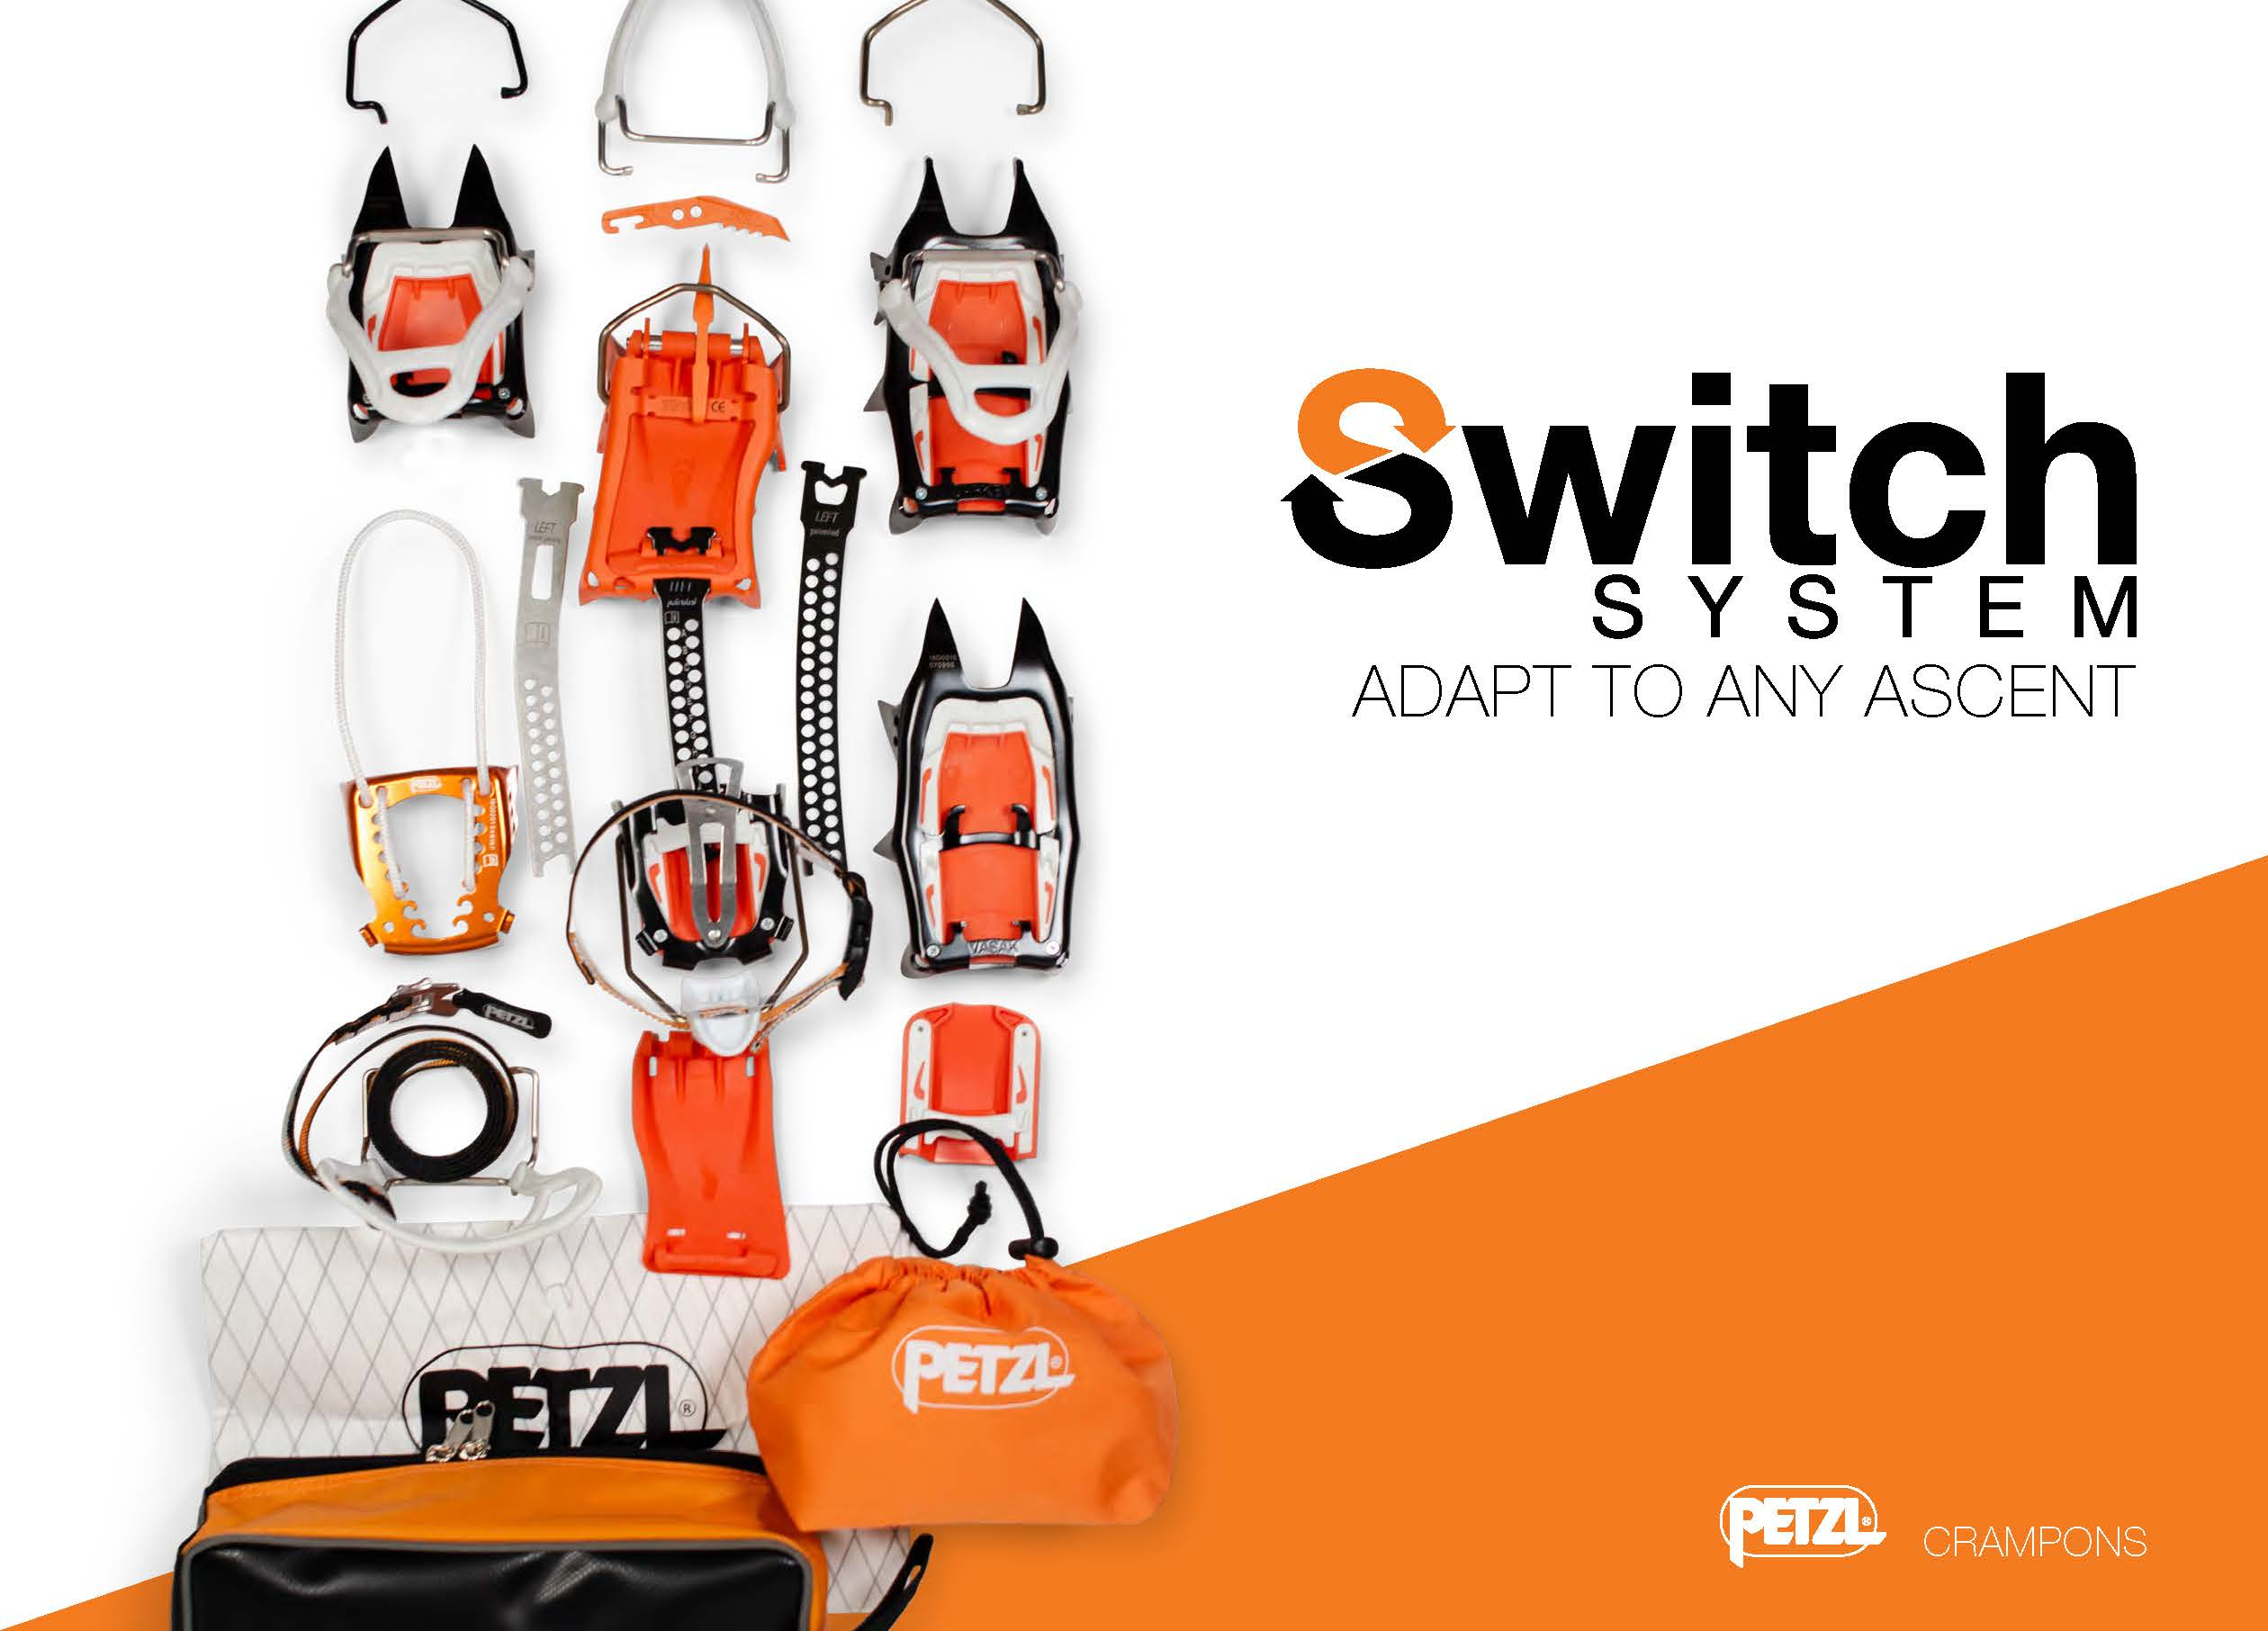 petzl_switch-system_booklet-digital_no-flip_page_1